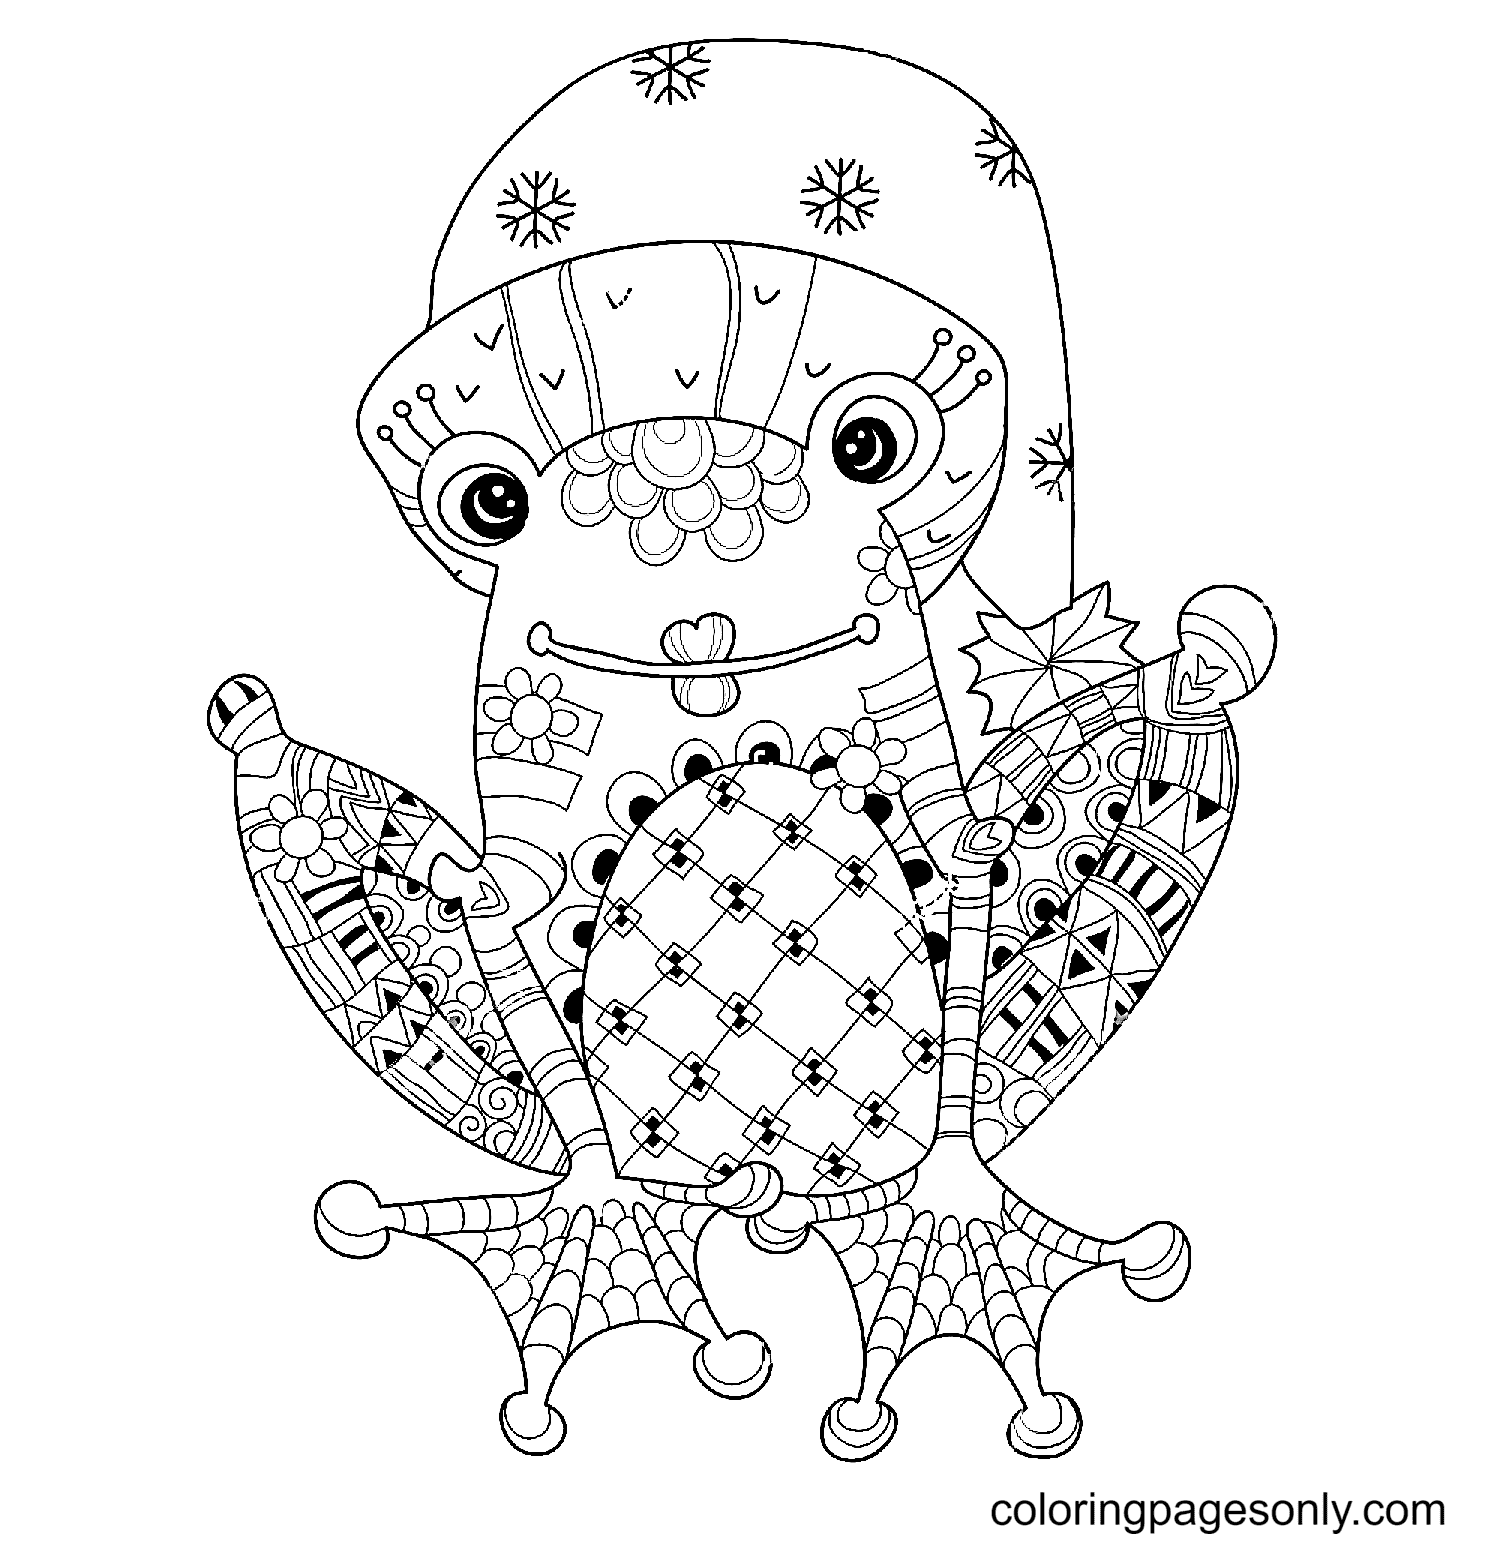 Cute Frog Prince in Christmas Hat Coloring Page